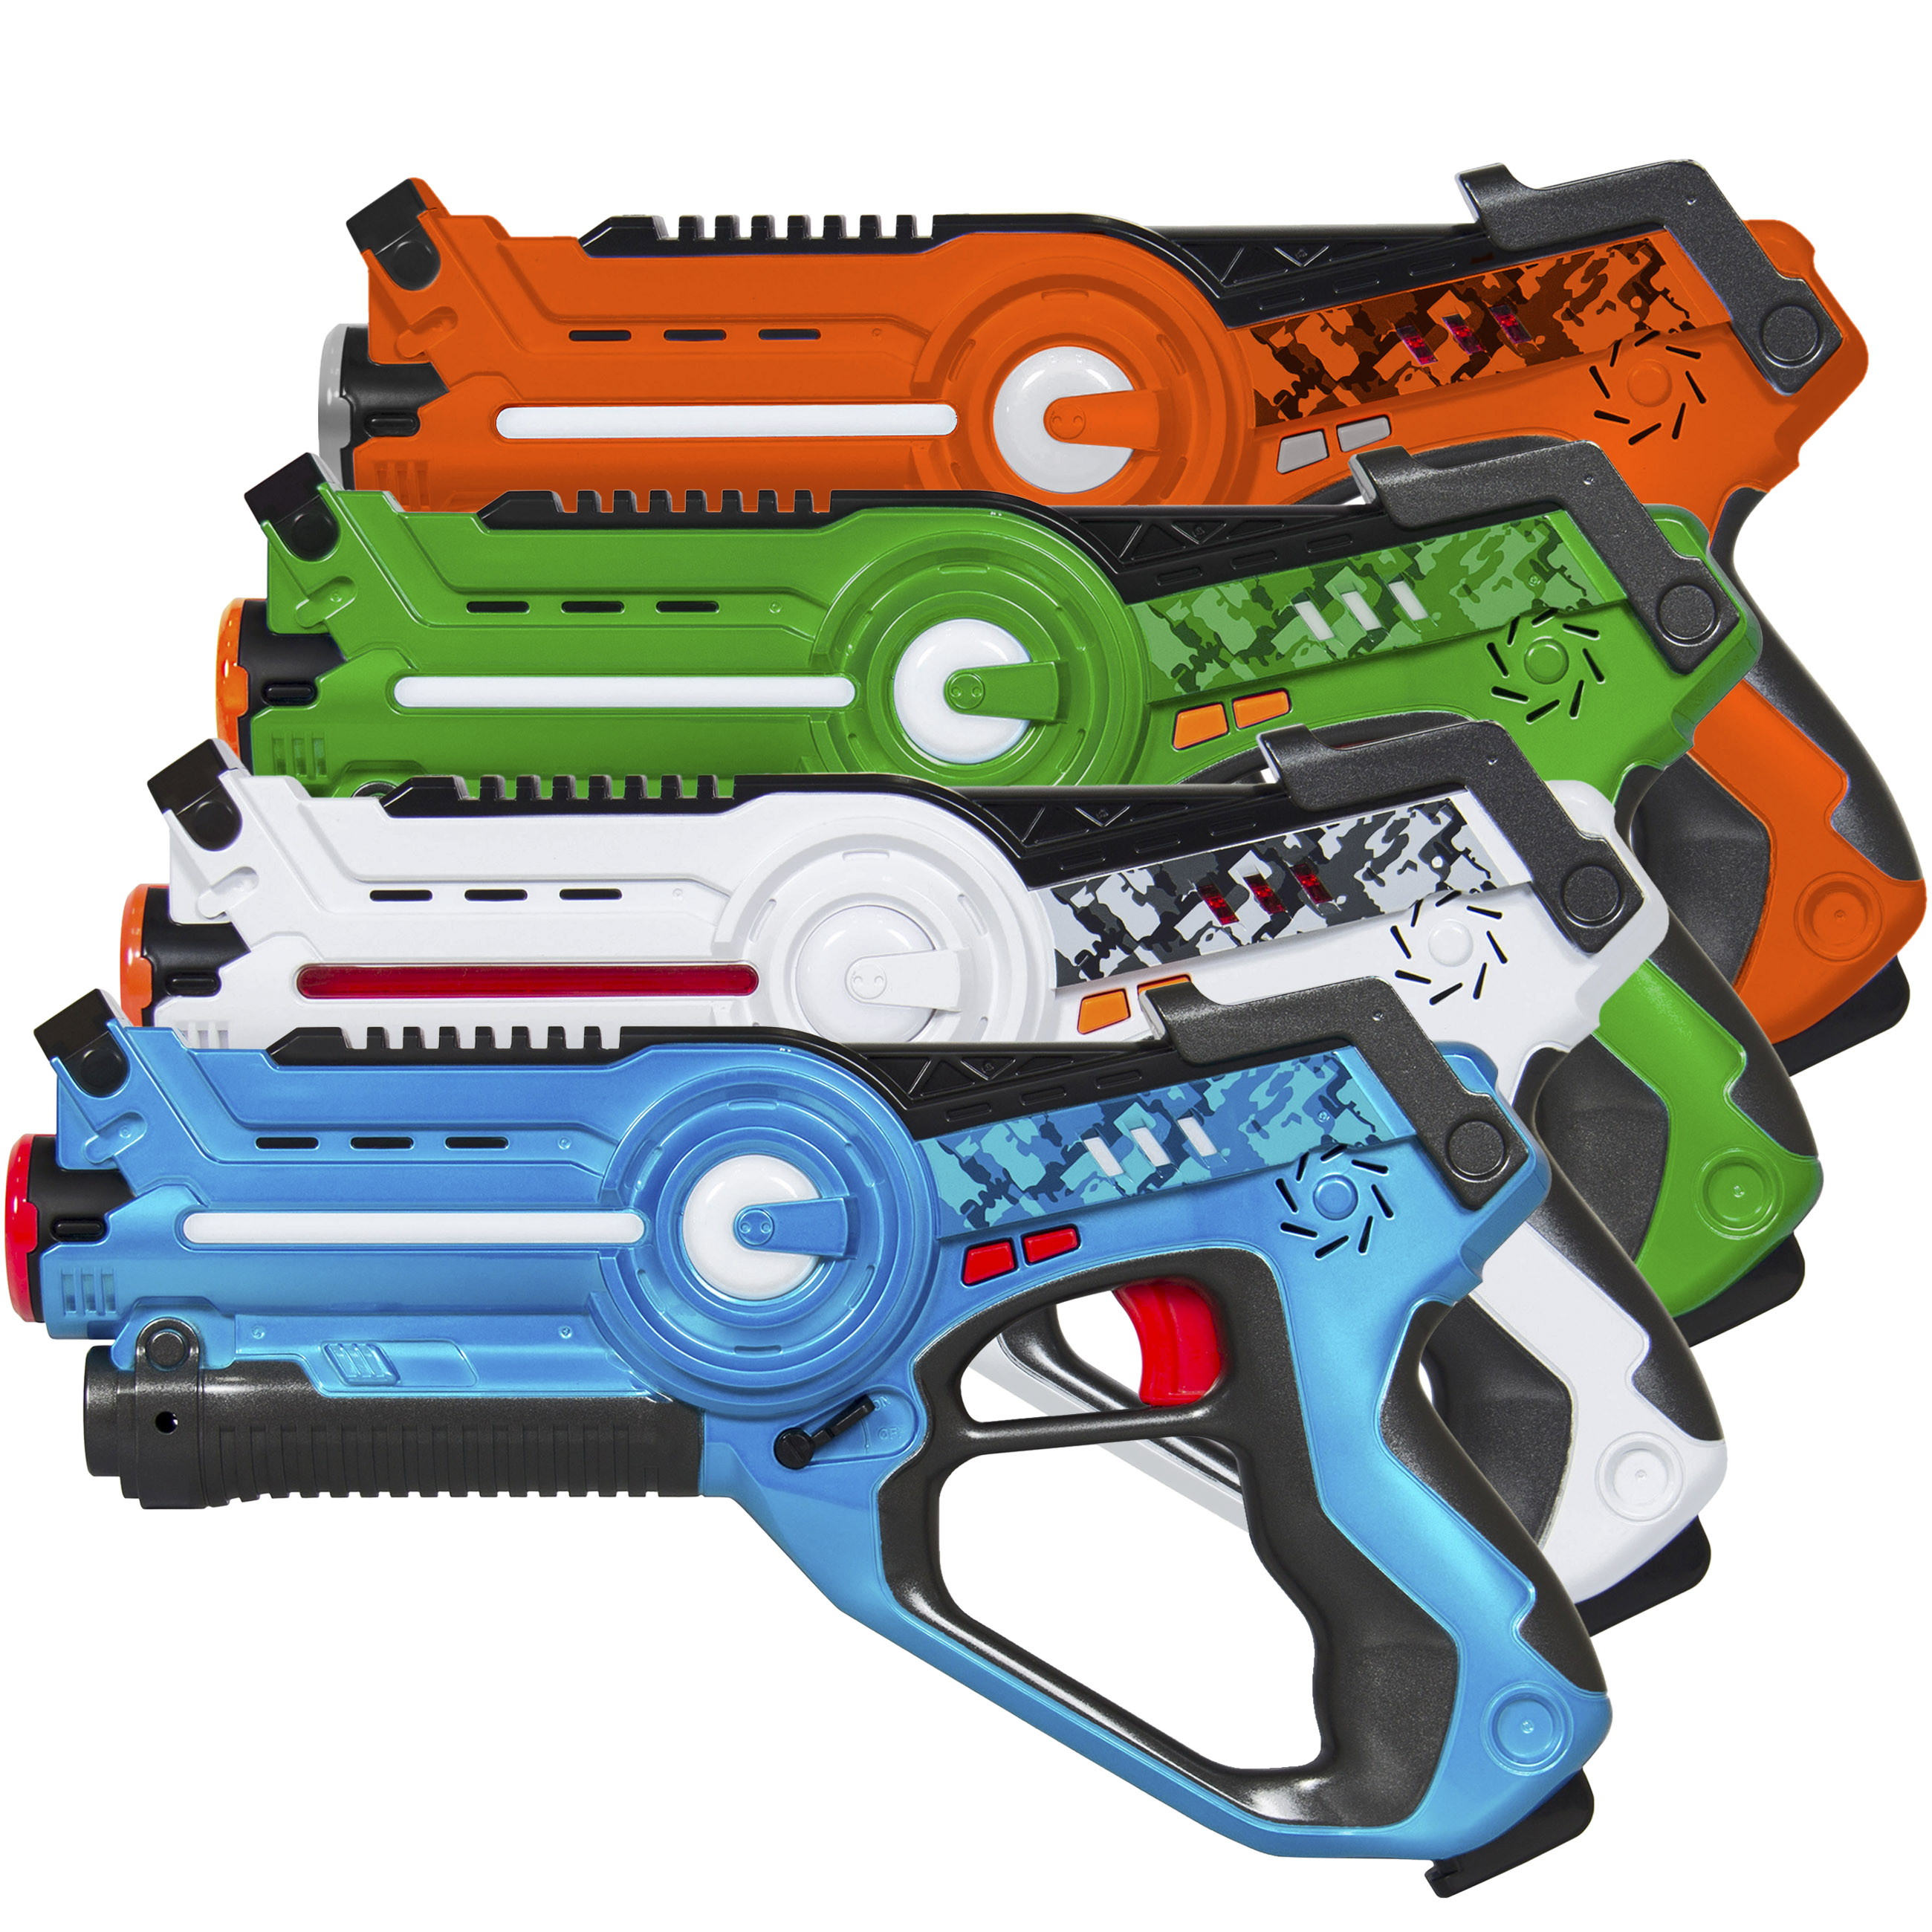 Best Choice Products Kids infrared Laser Tag Set w/ Multiplayer Mode, 4 Pack, Compatible with SKY4892 and SKY4893